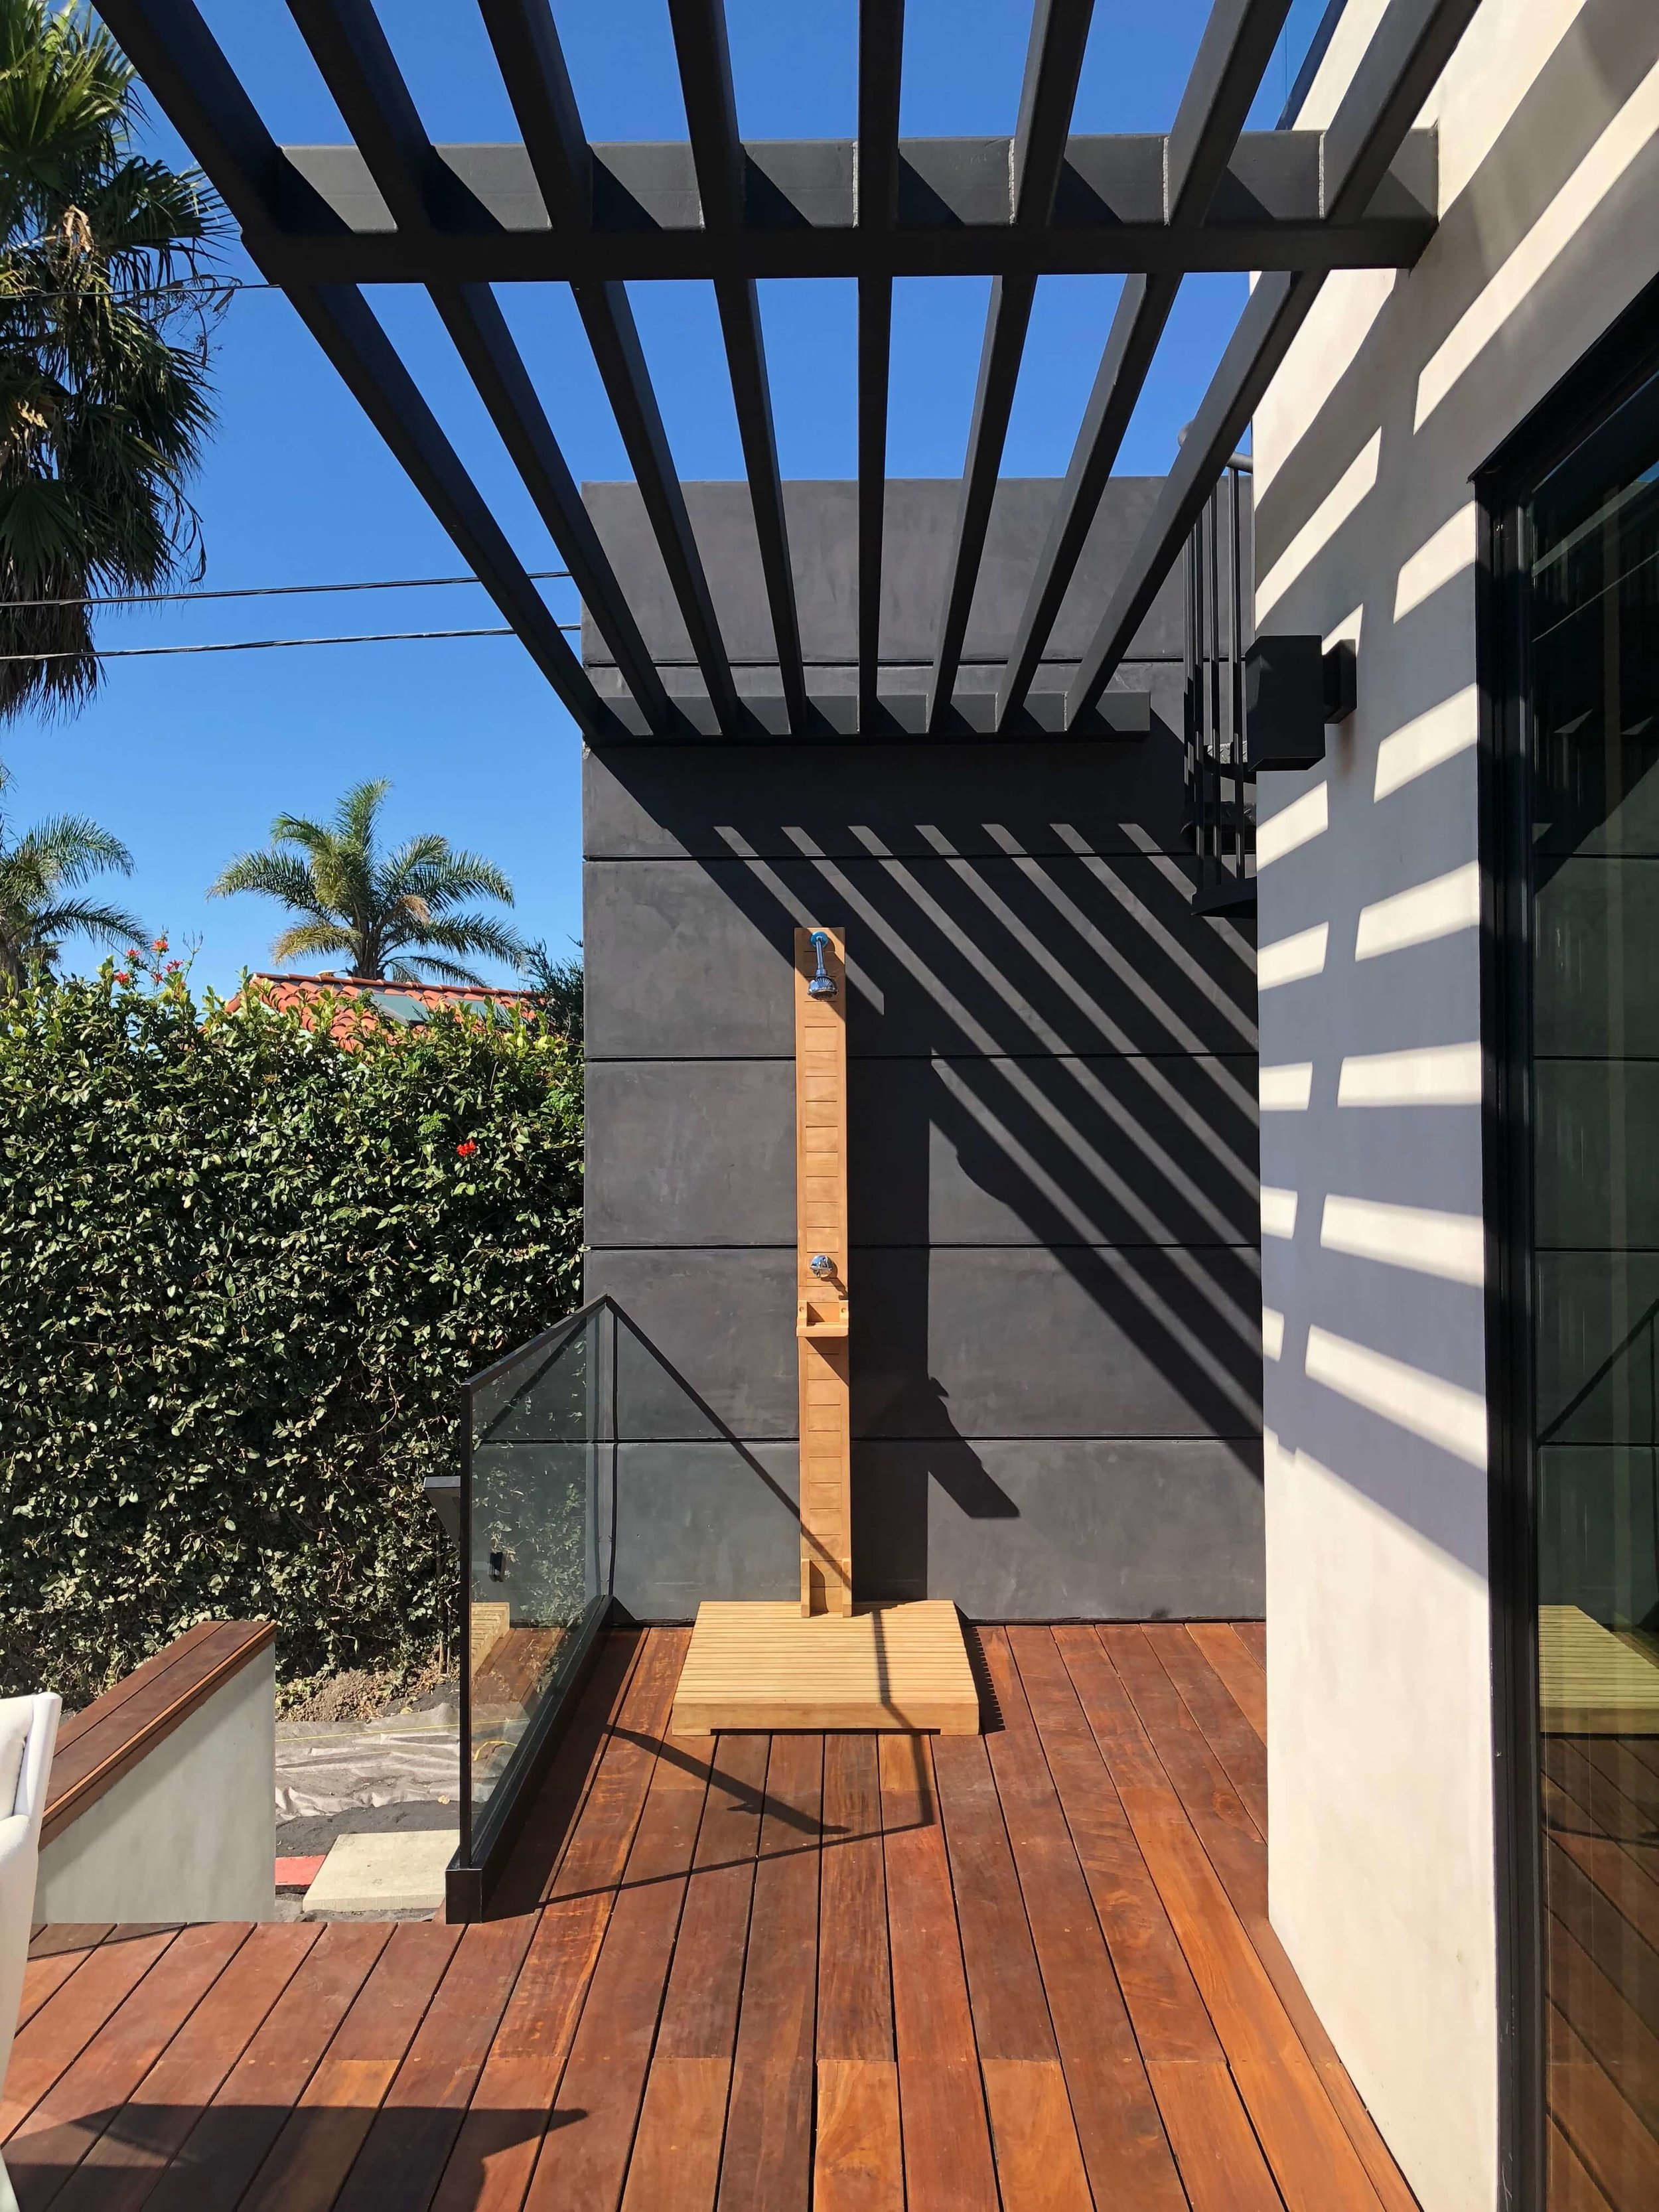 California contemporary home, Dwell on Design's Fall Home Tour, Designer: Vitus Matare #outdoorshower #pergola